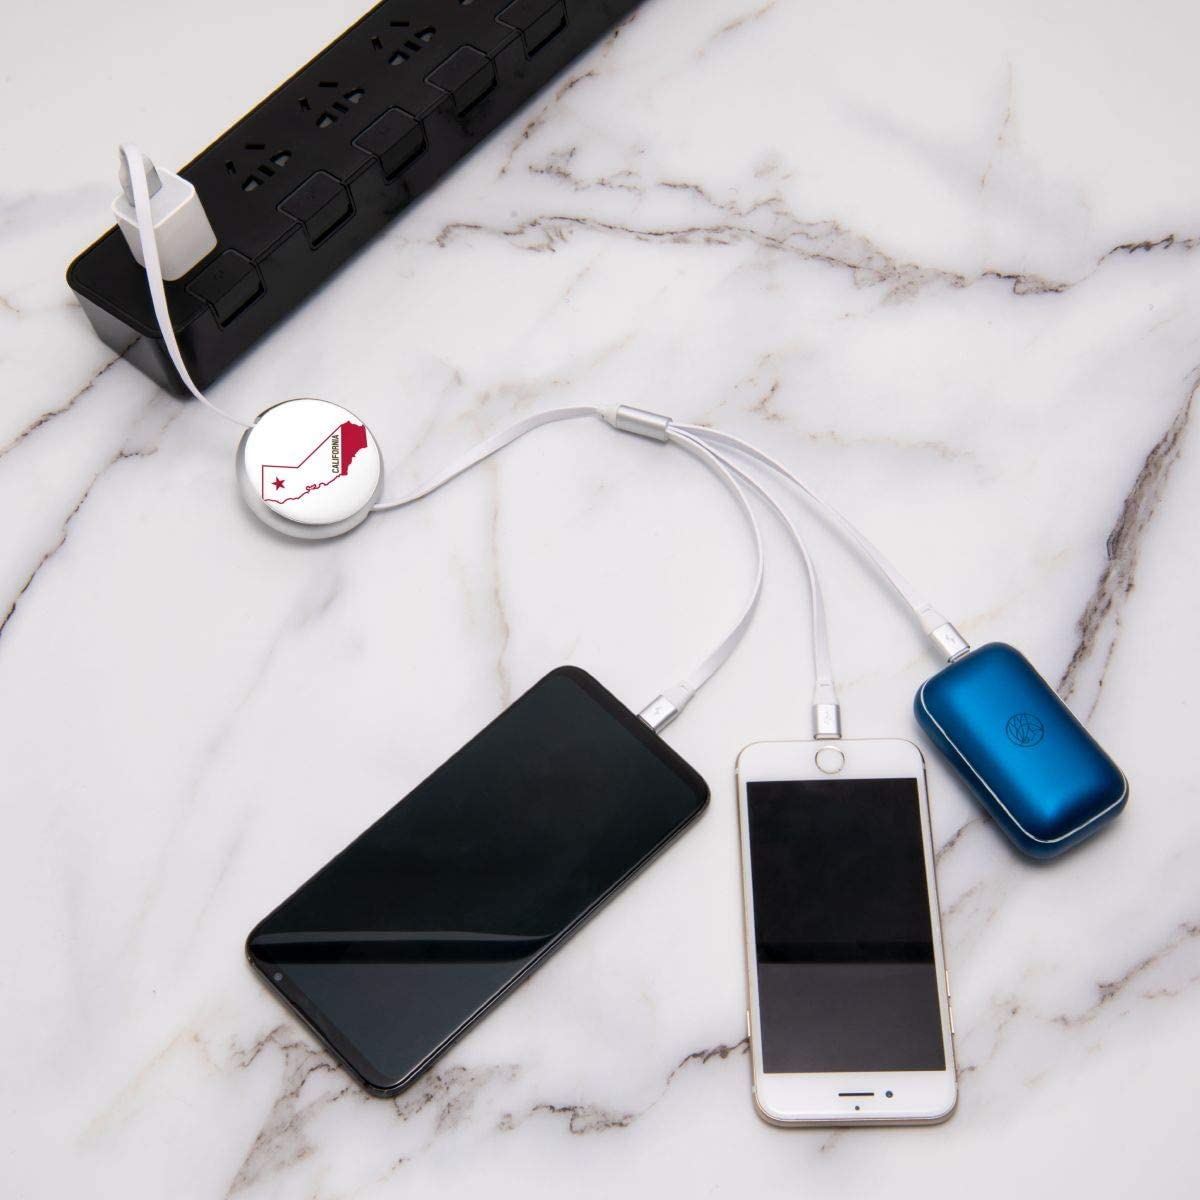 California Round Telescopic Aluminum Alloy Shell Charging Cable Three-in-One Data USB Cable Phone Charger